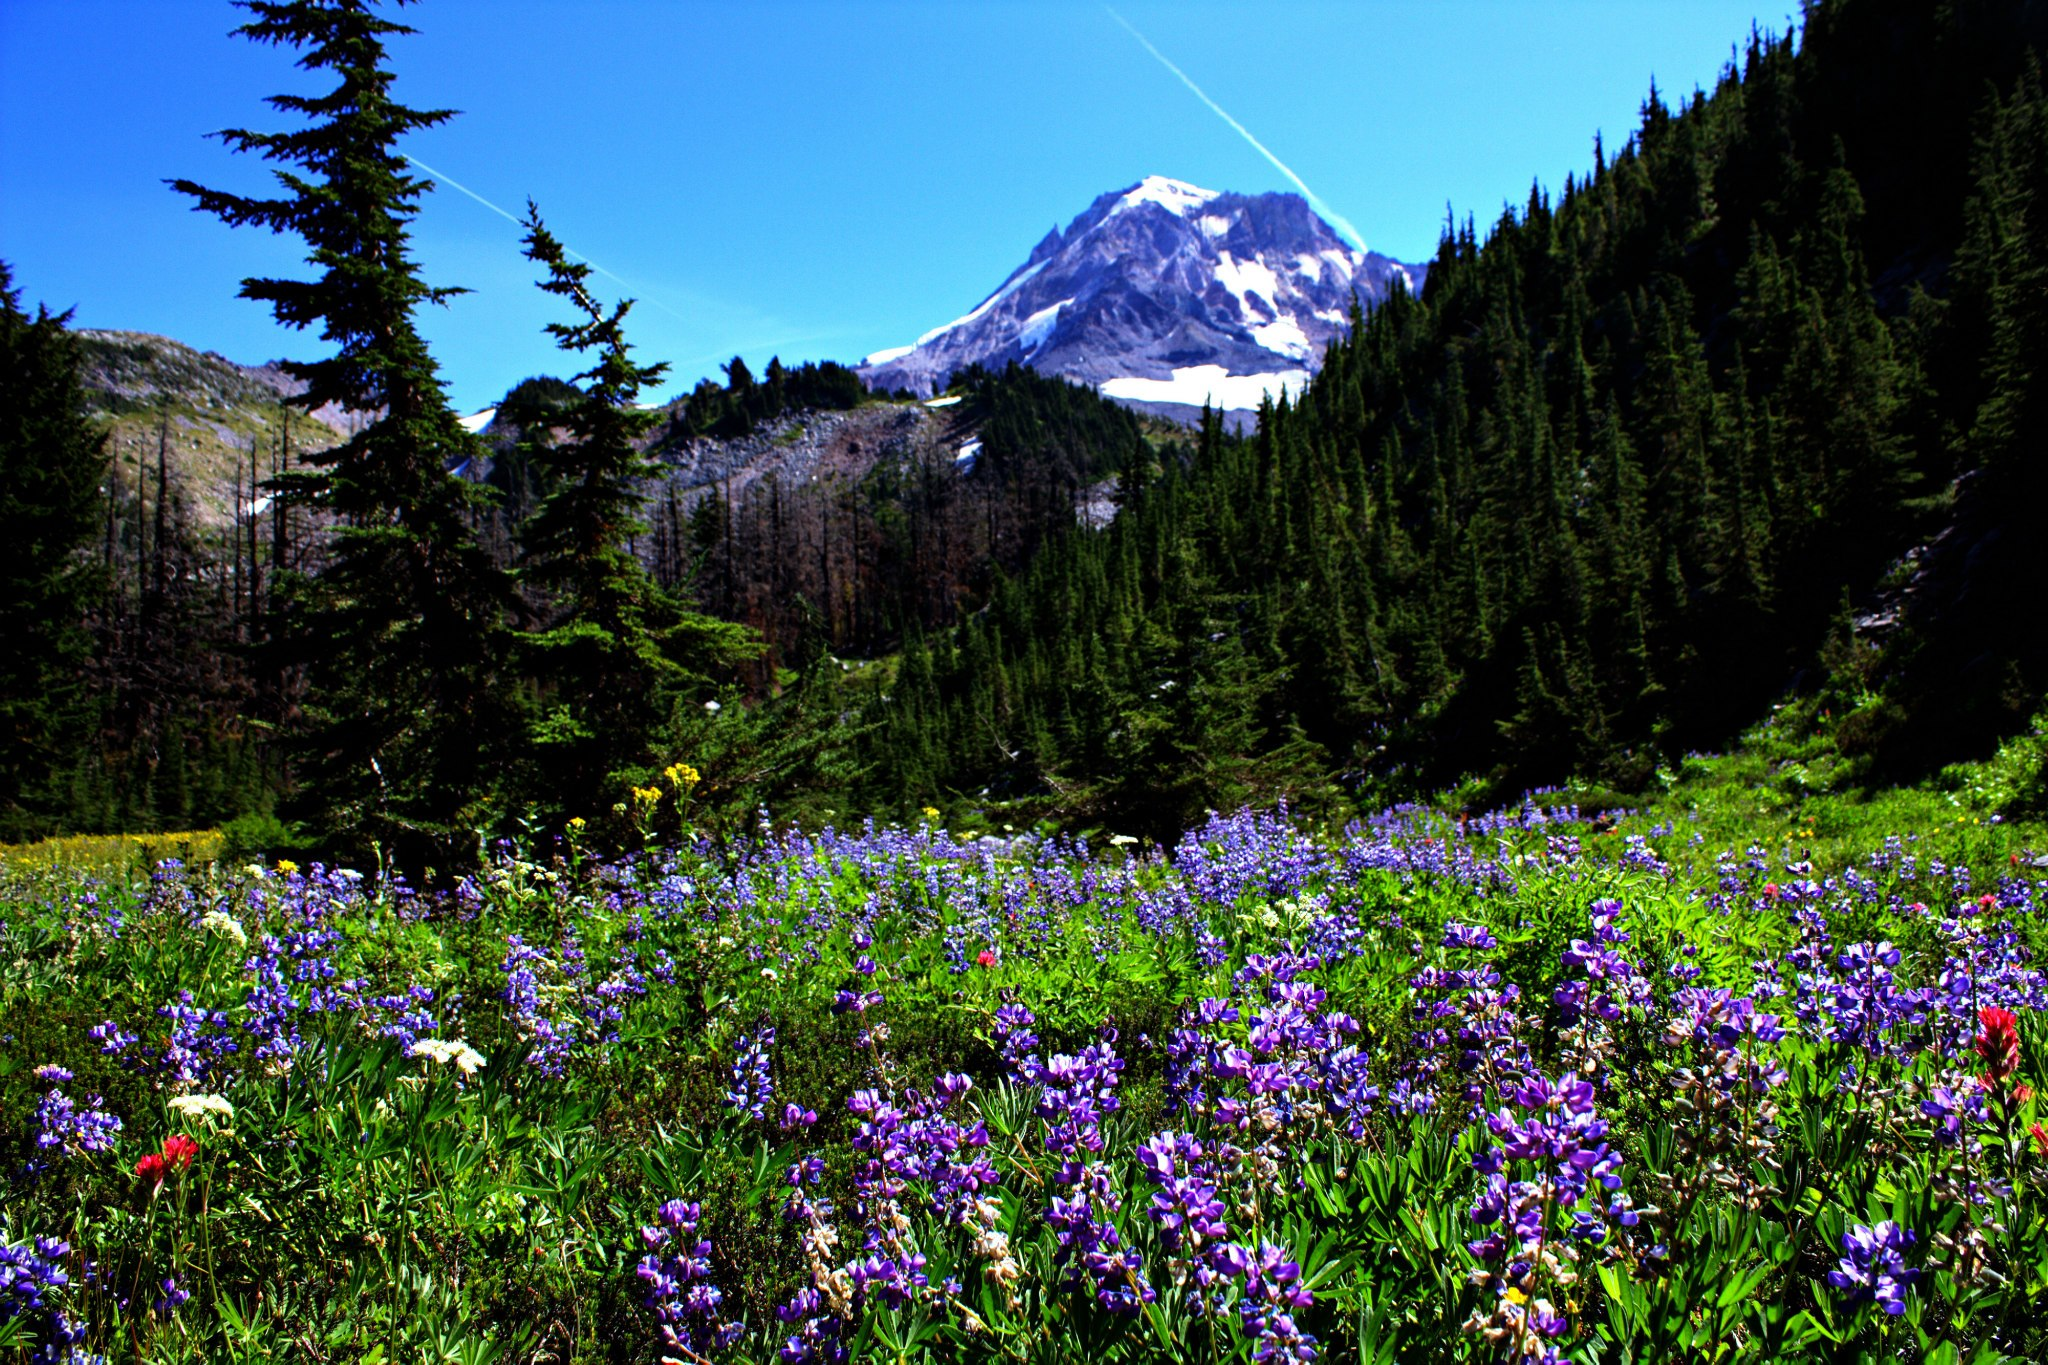 Mount hood, Columbia River Gorge, Fruit Loop, wine tasting, windsurfing, mountain biking, kiteboarding, snowboarding, skiing, snowshoeing, hiking, wildflowers, photography, apple orchards, cider, 4x4, 4 wheel drive, offroading, overlanding